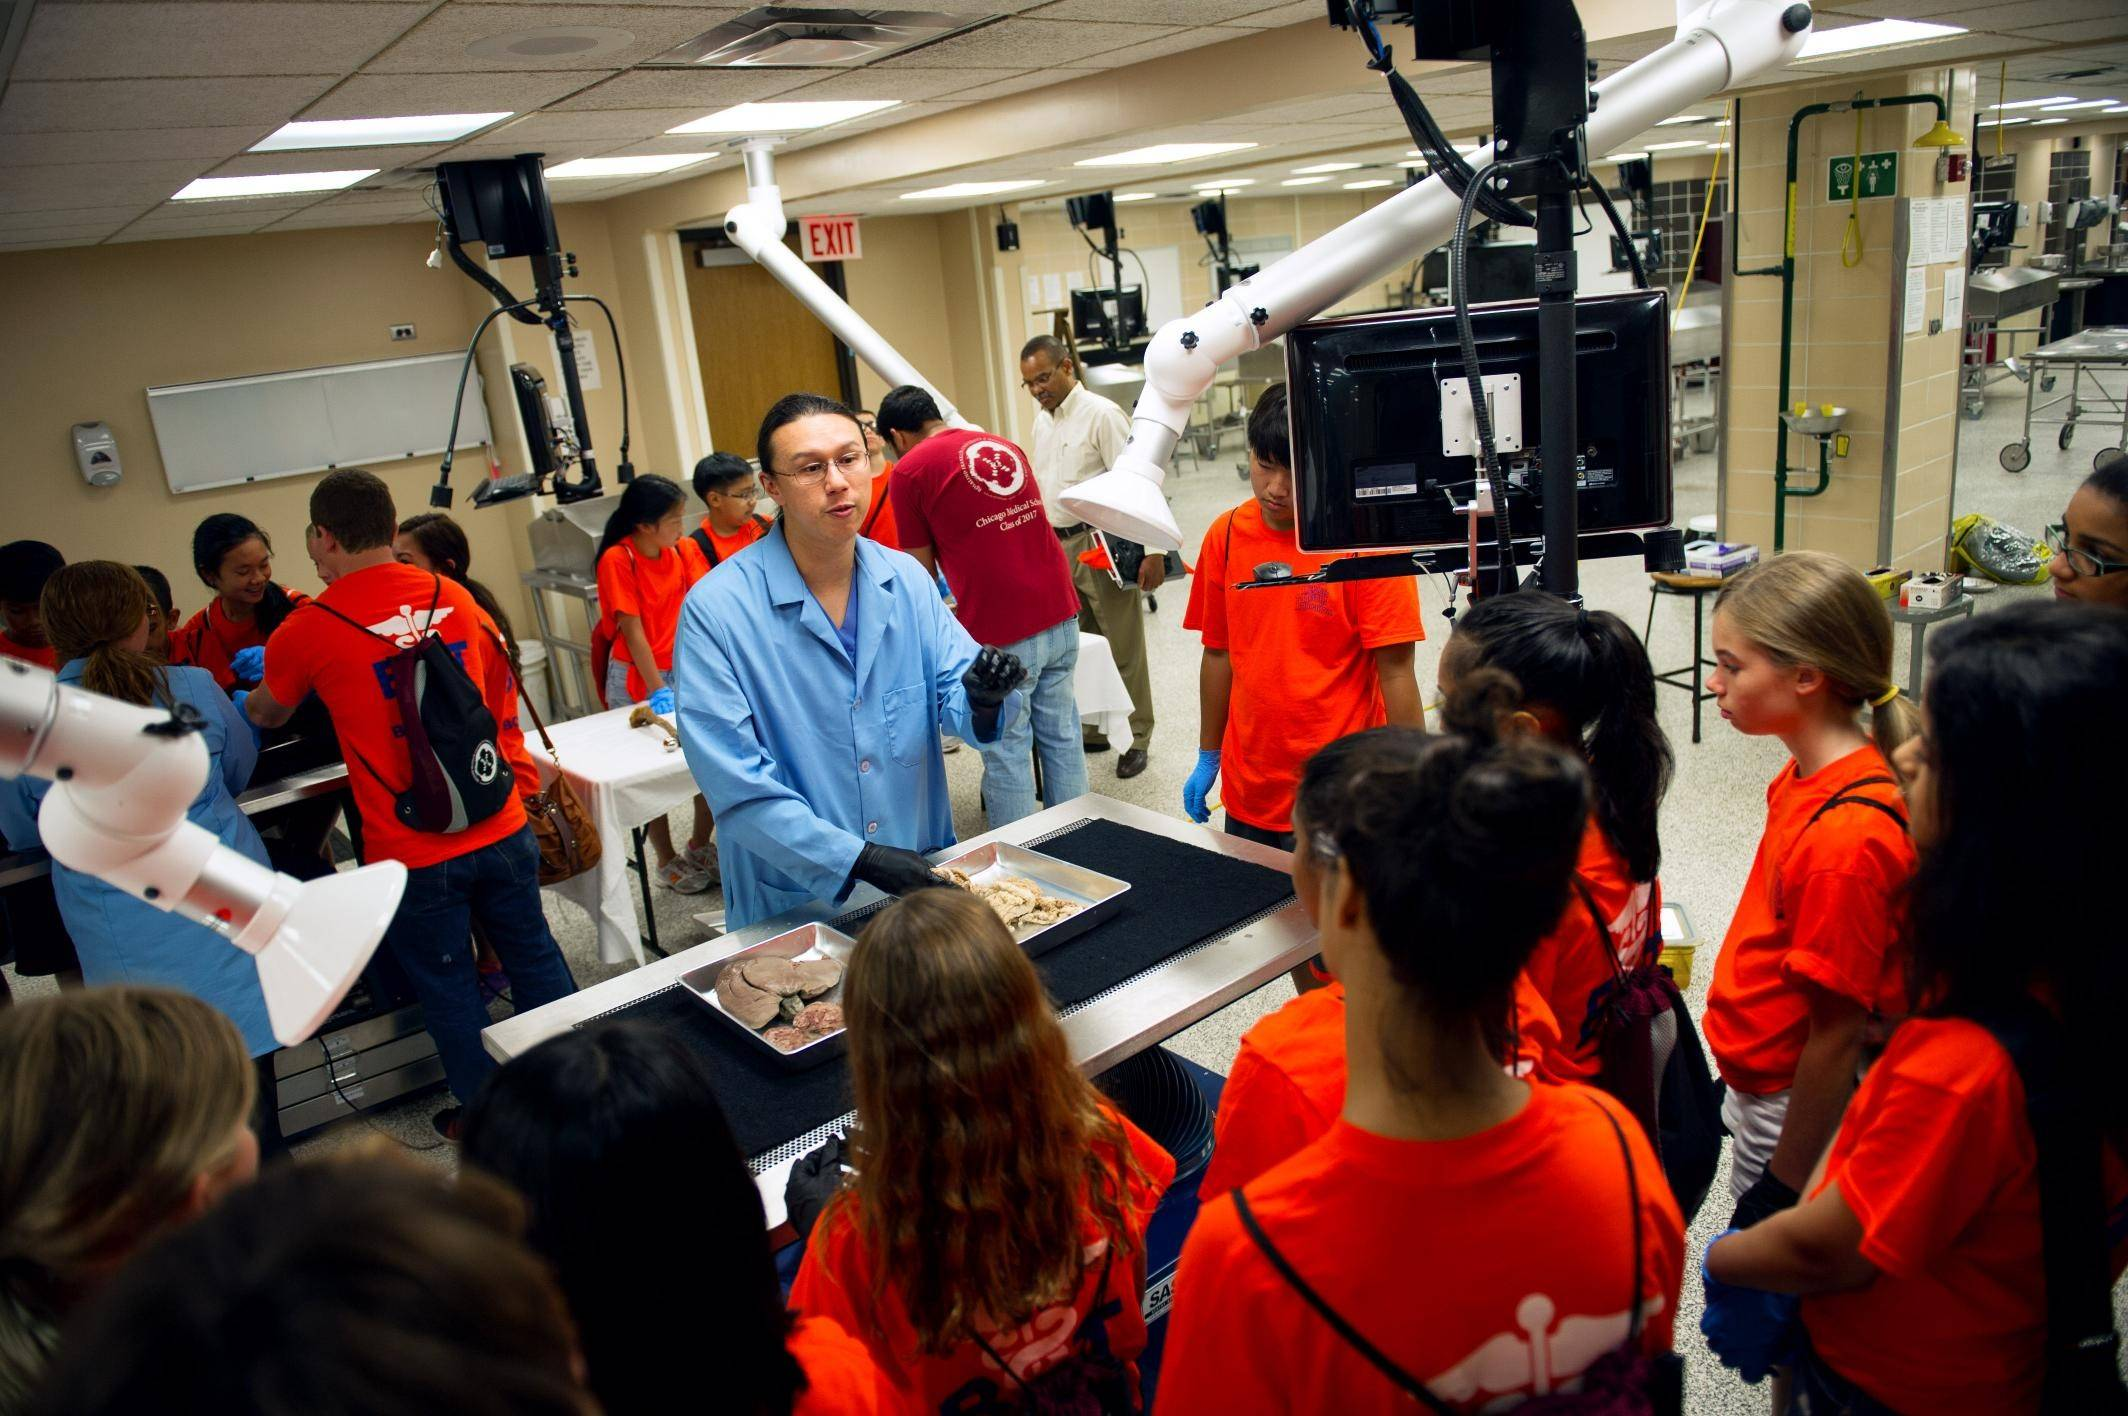 The Body Trek camp lets students explore several medical and health care topics and engage in hands-on experiences through field trips to hospitals and museums.